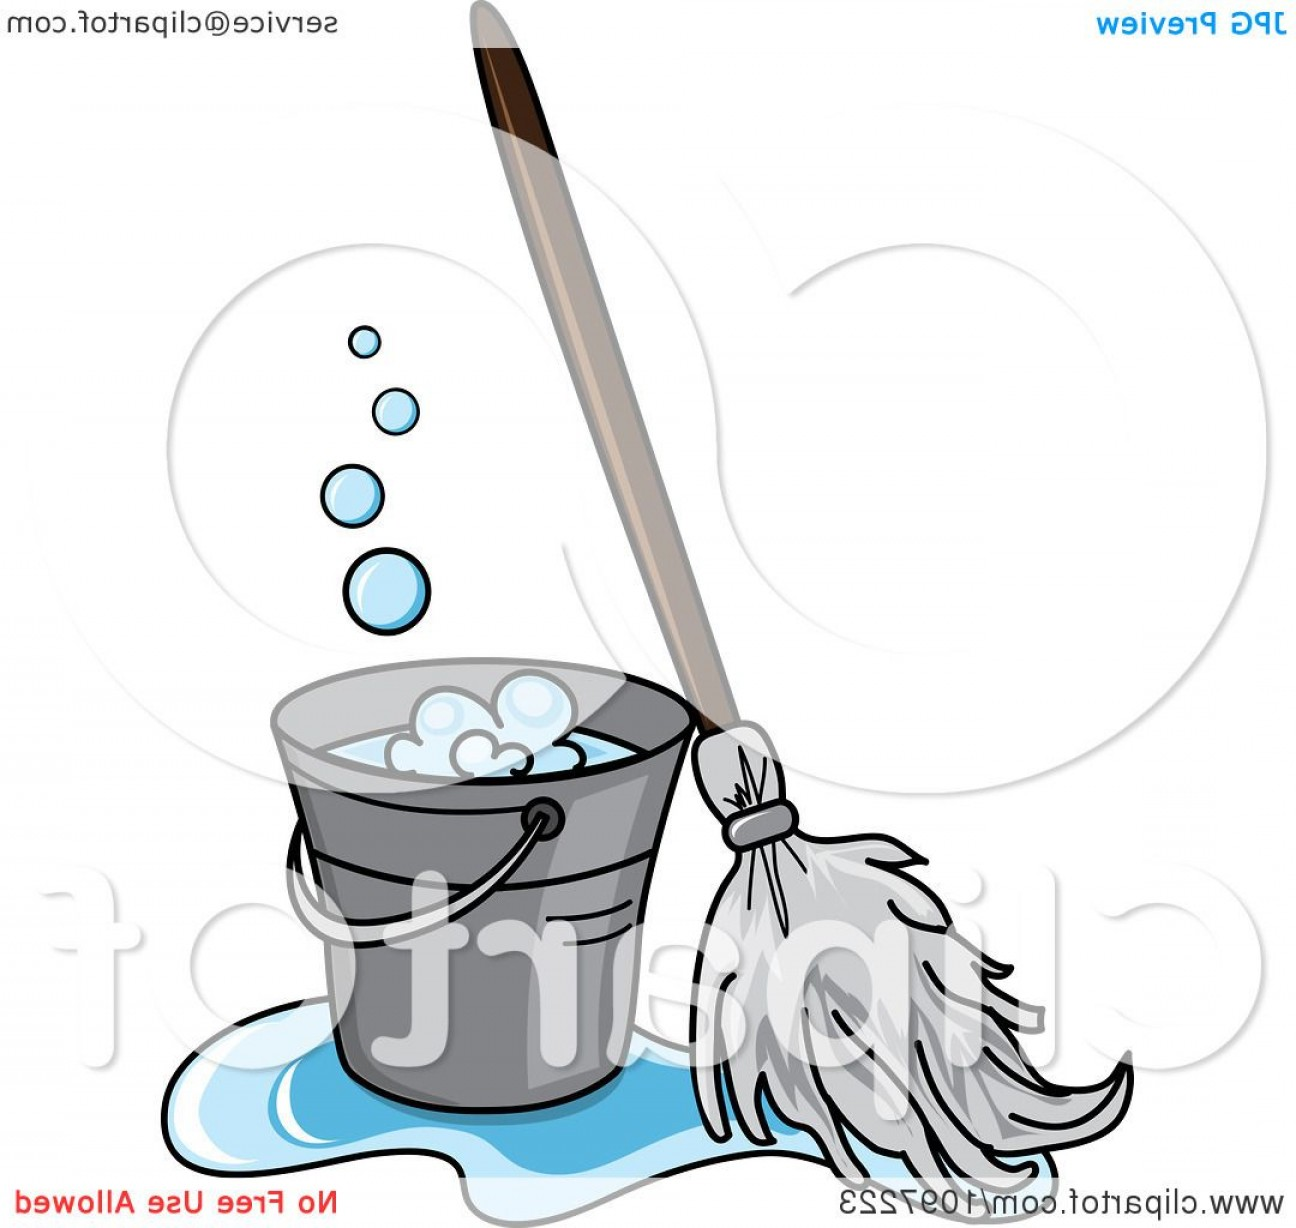 Mop And Bucket Clip Art Vector: Mop In A Puddle Resting Against A Cleaning Bucket